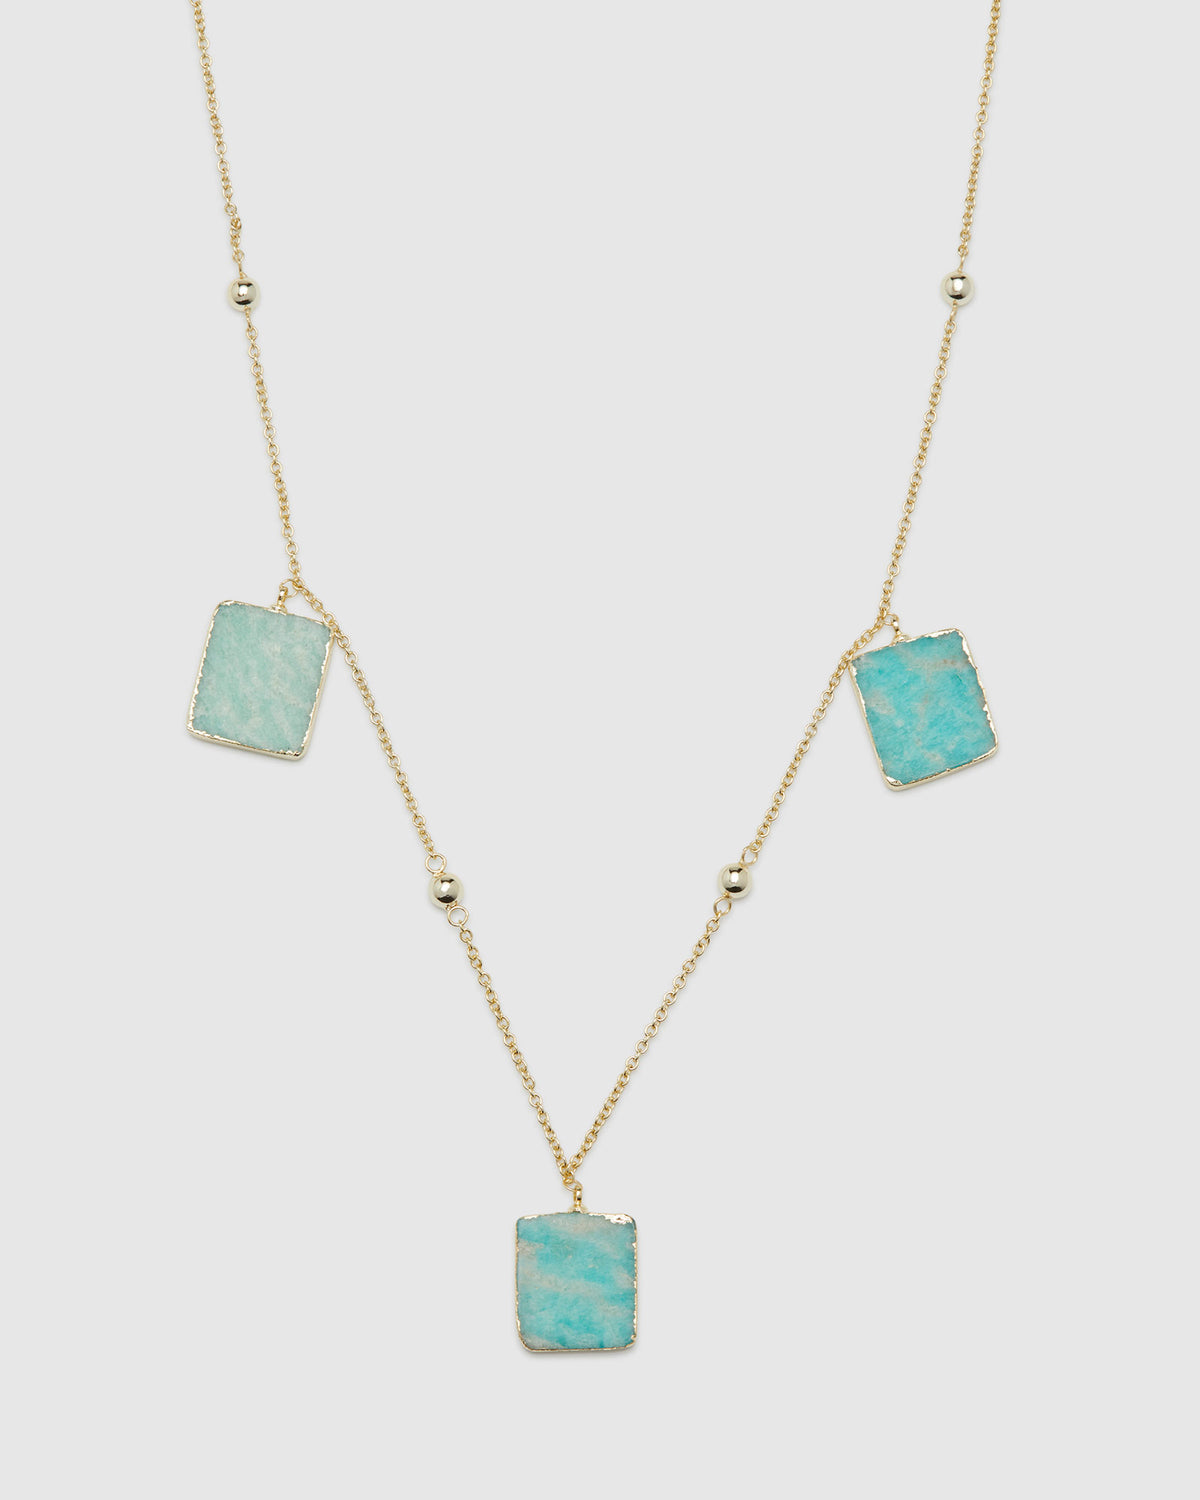 VIDA AMAZONITE STONE NECKLACE AQUA/PALE GOLD